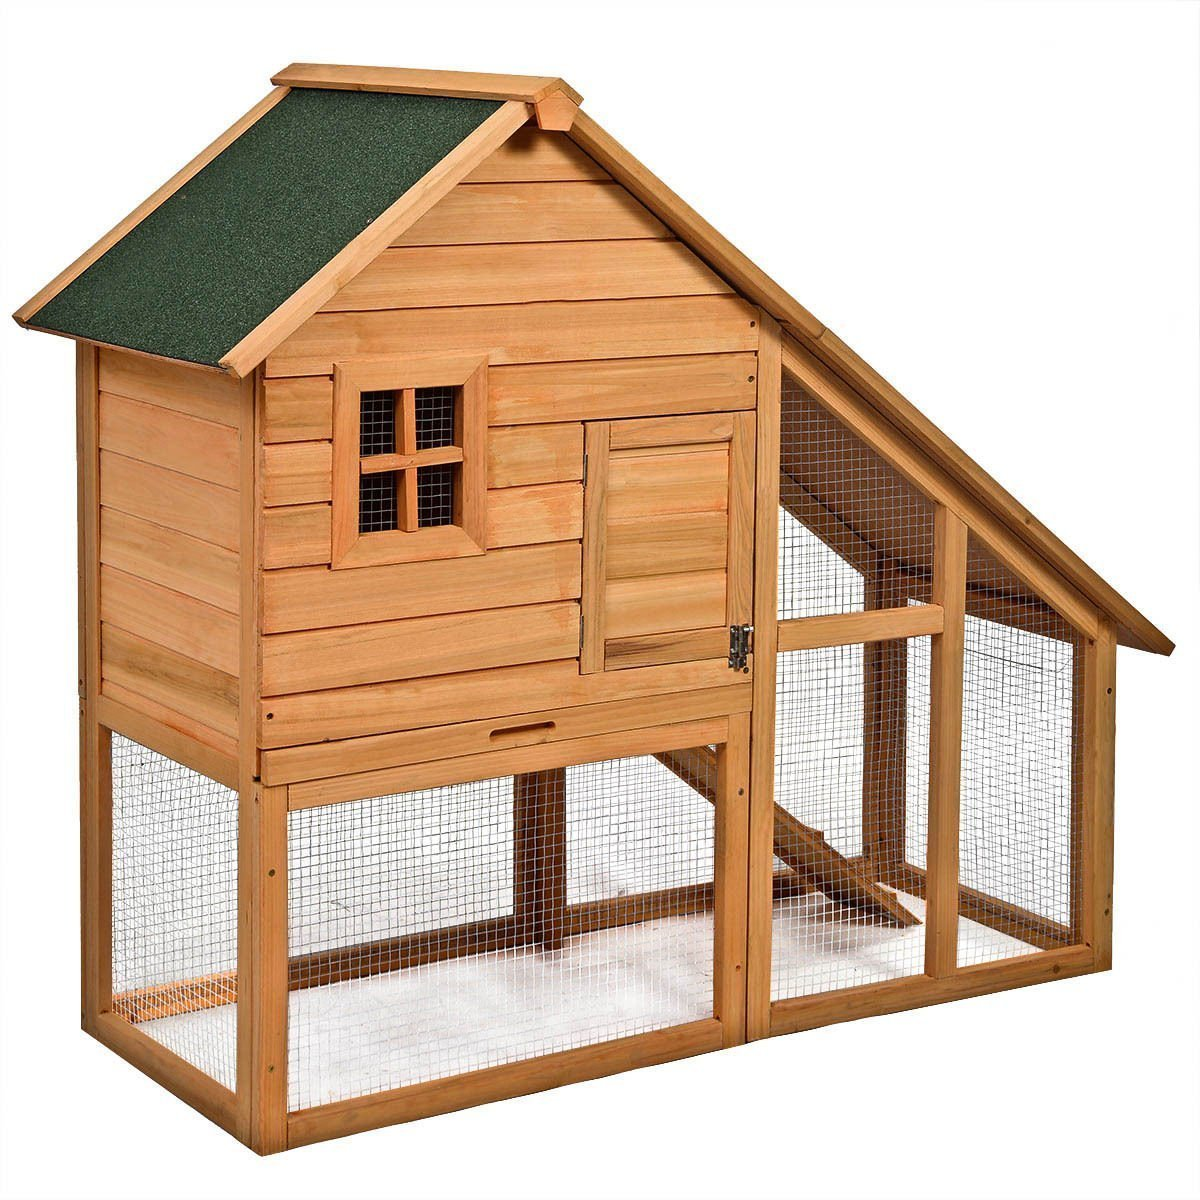 Tangkula Deluxe Wooden Chicken Coop 55'' Hen House Rabbit Wood Hutch Poultry Cage Habitat by Tangkula (Image #2)